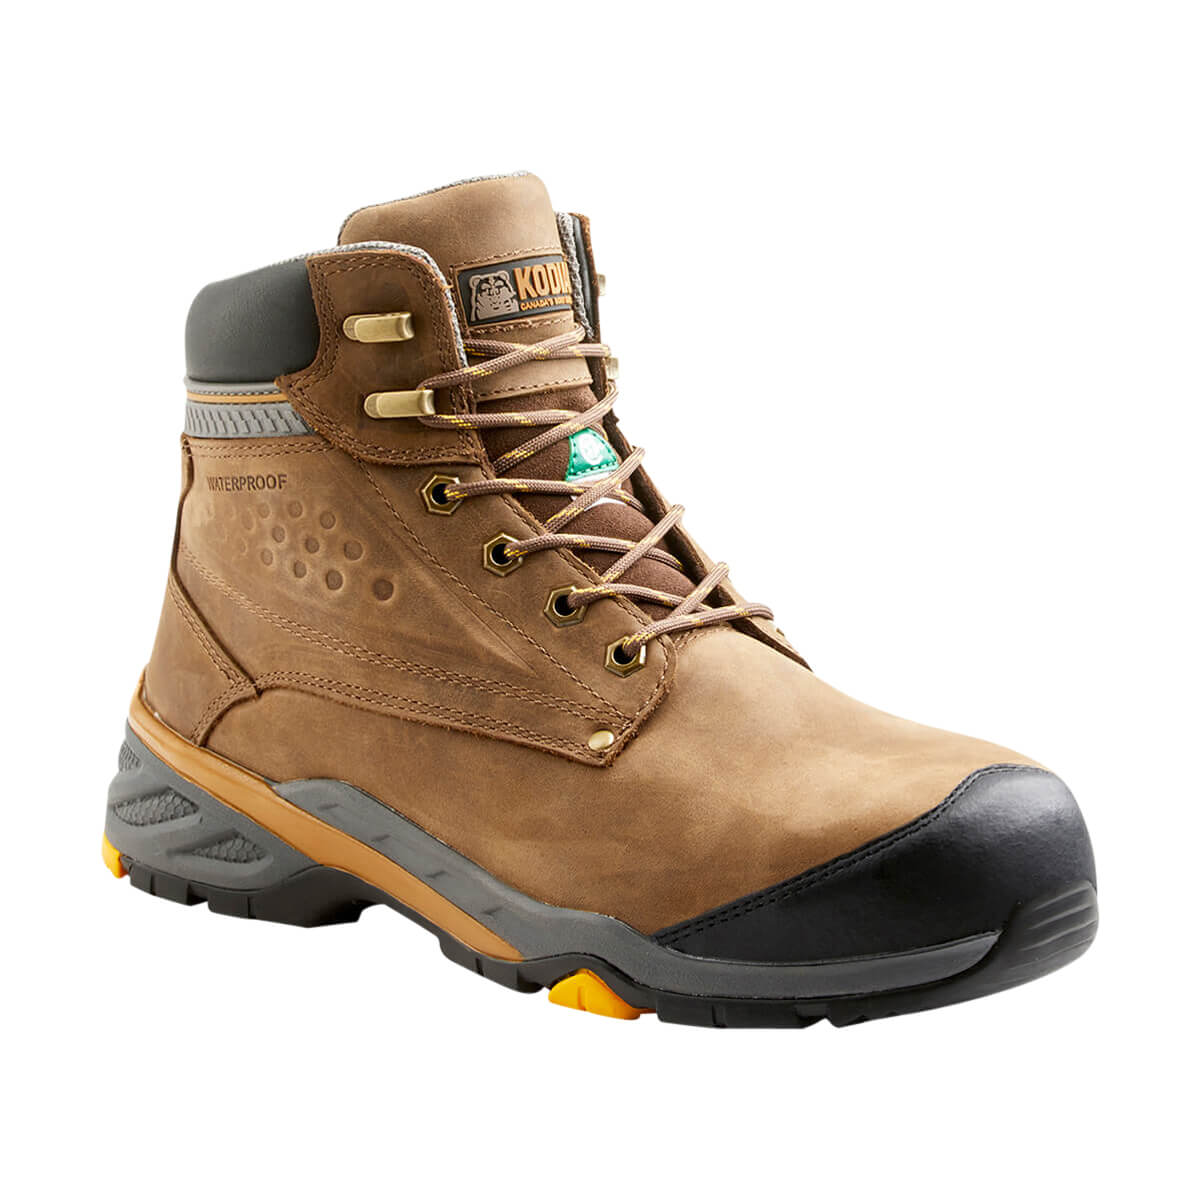 Kodiak Crusade Boot